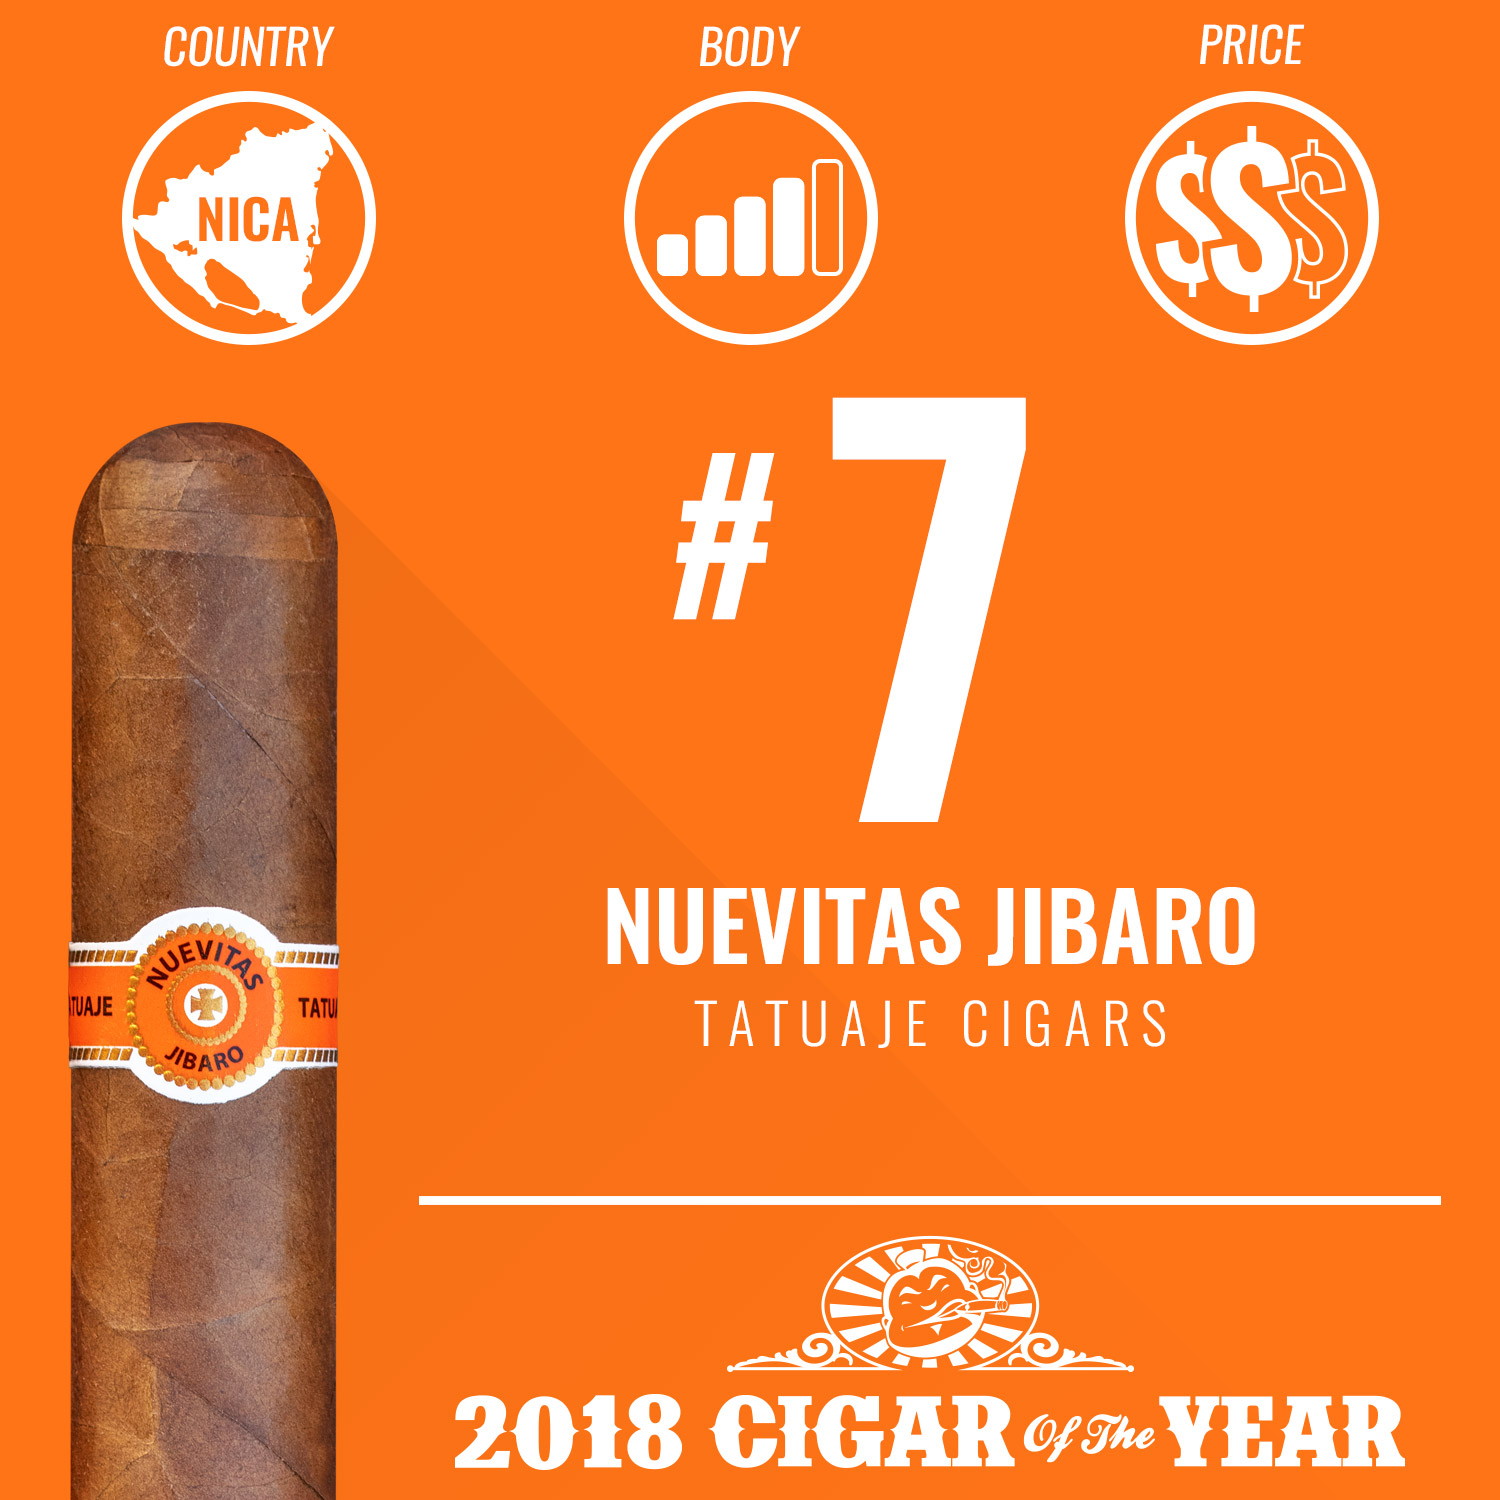 Tatuaje Nuevitas Jibaro No. 7 Cigar of the Year 2018